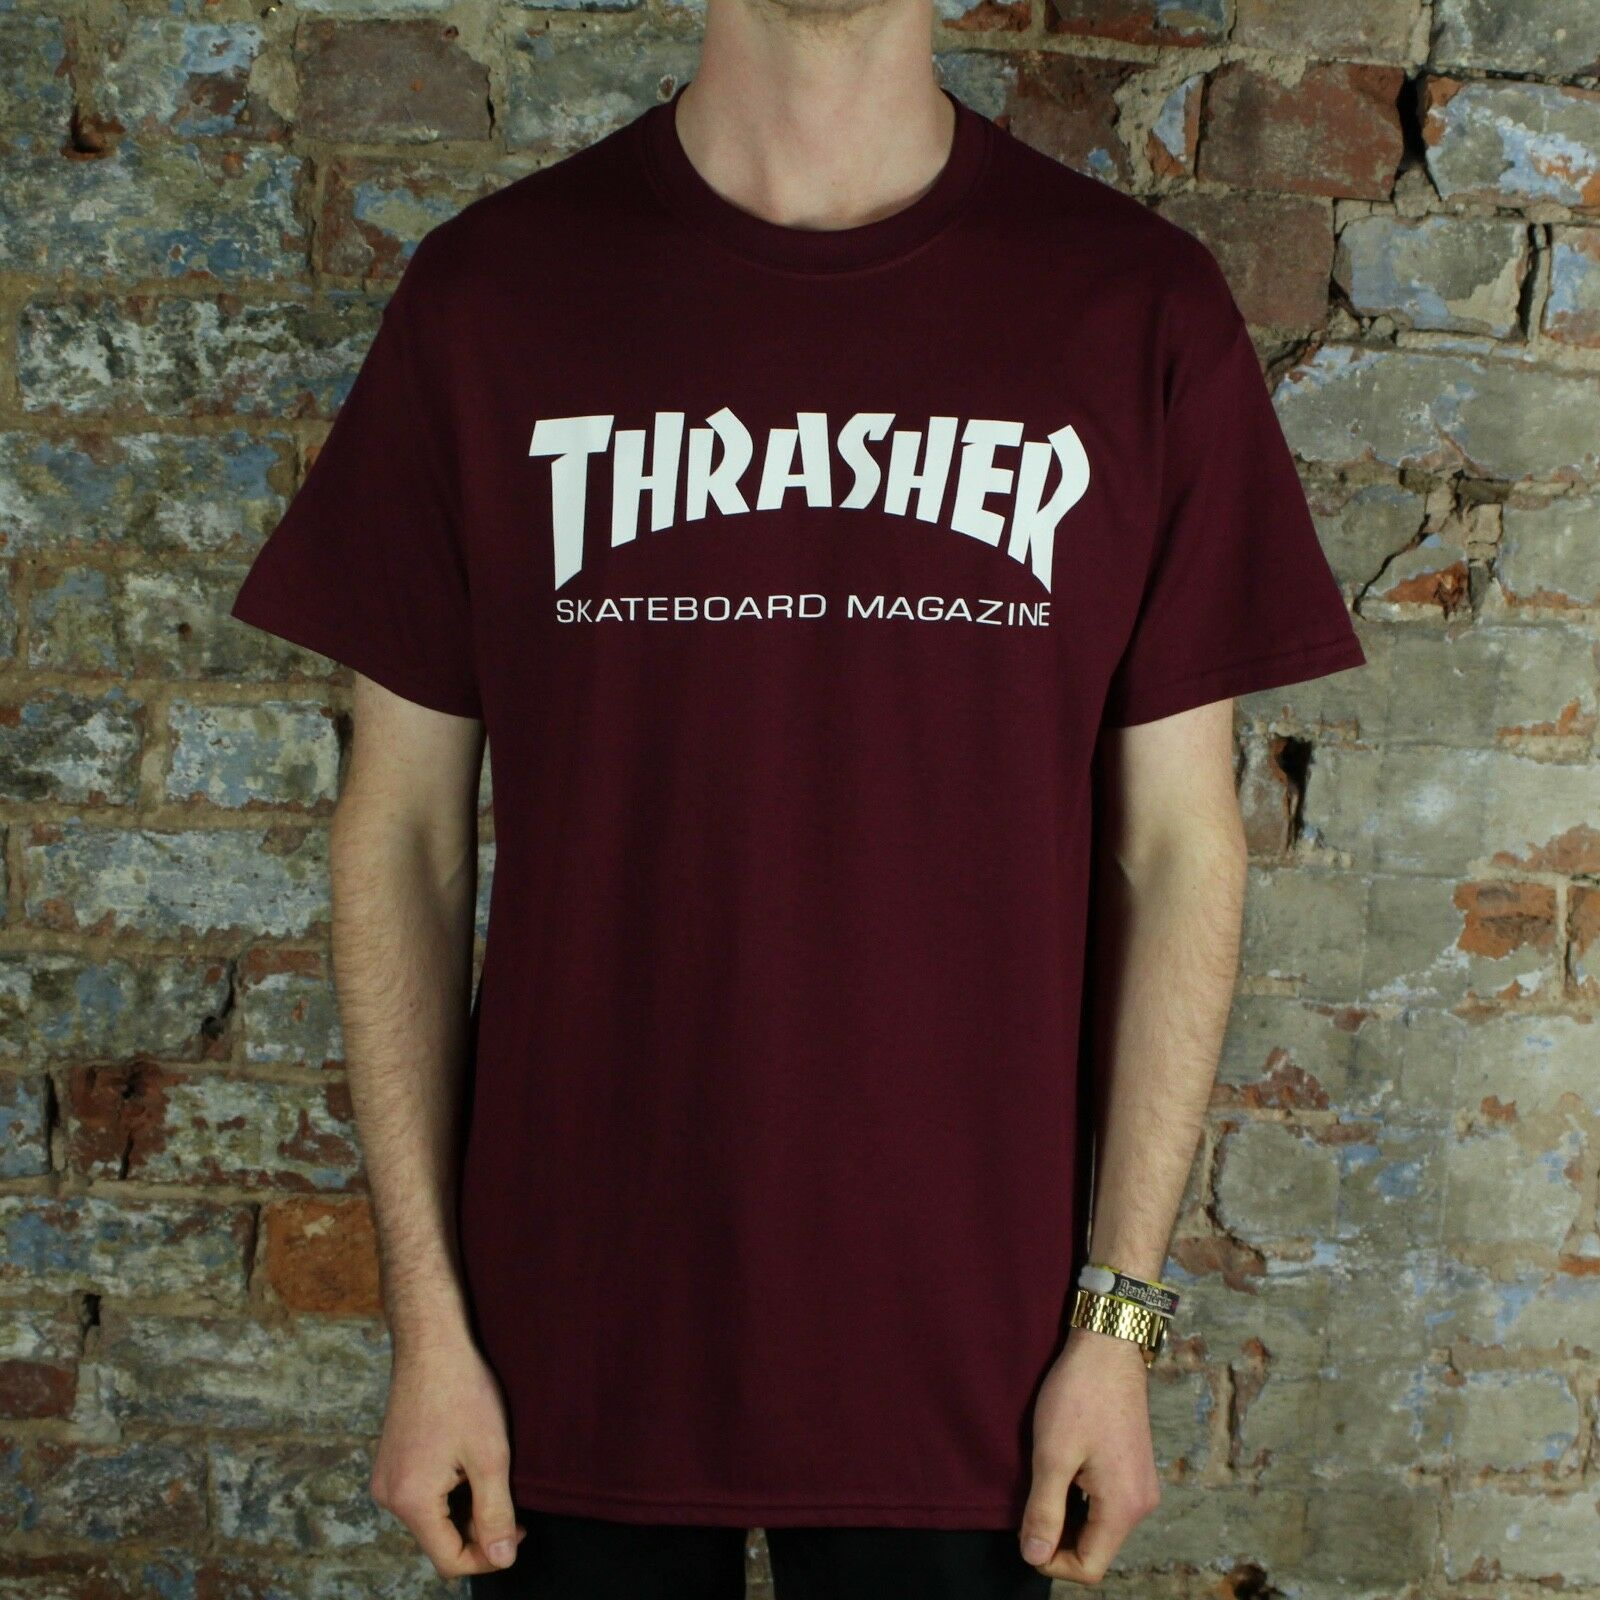 6518b90890a4 Details about Thrasher Stock Skate Mag Logo T-Shirt – Maroon Brand New in  size S